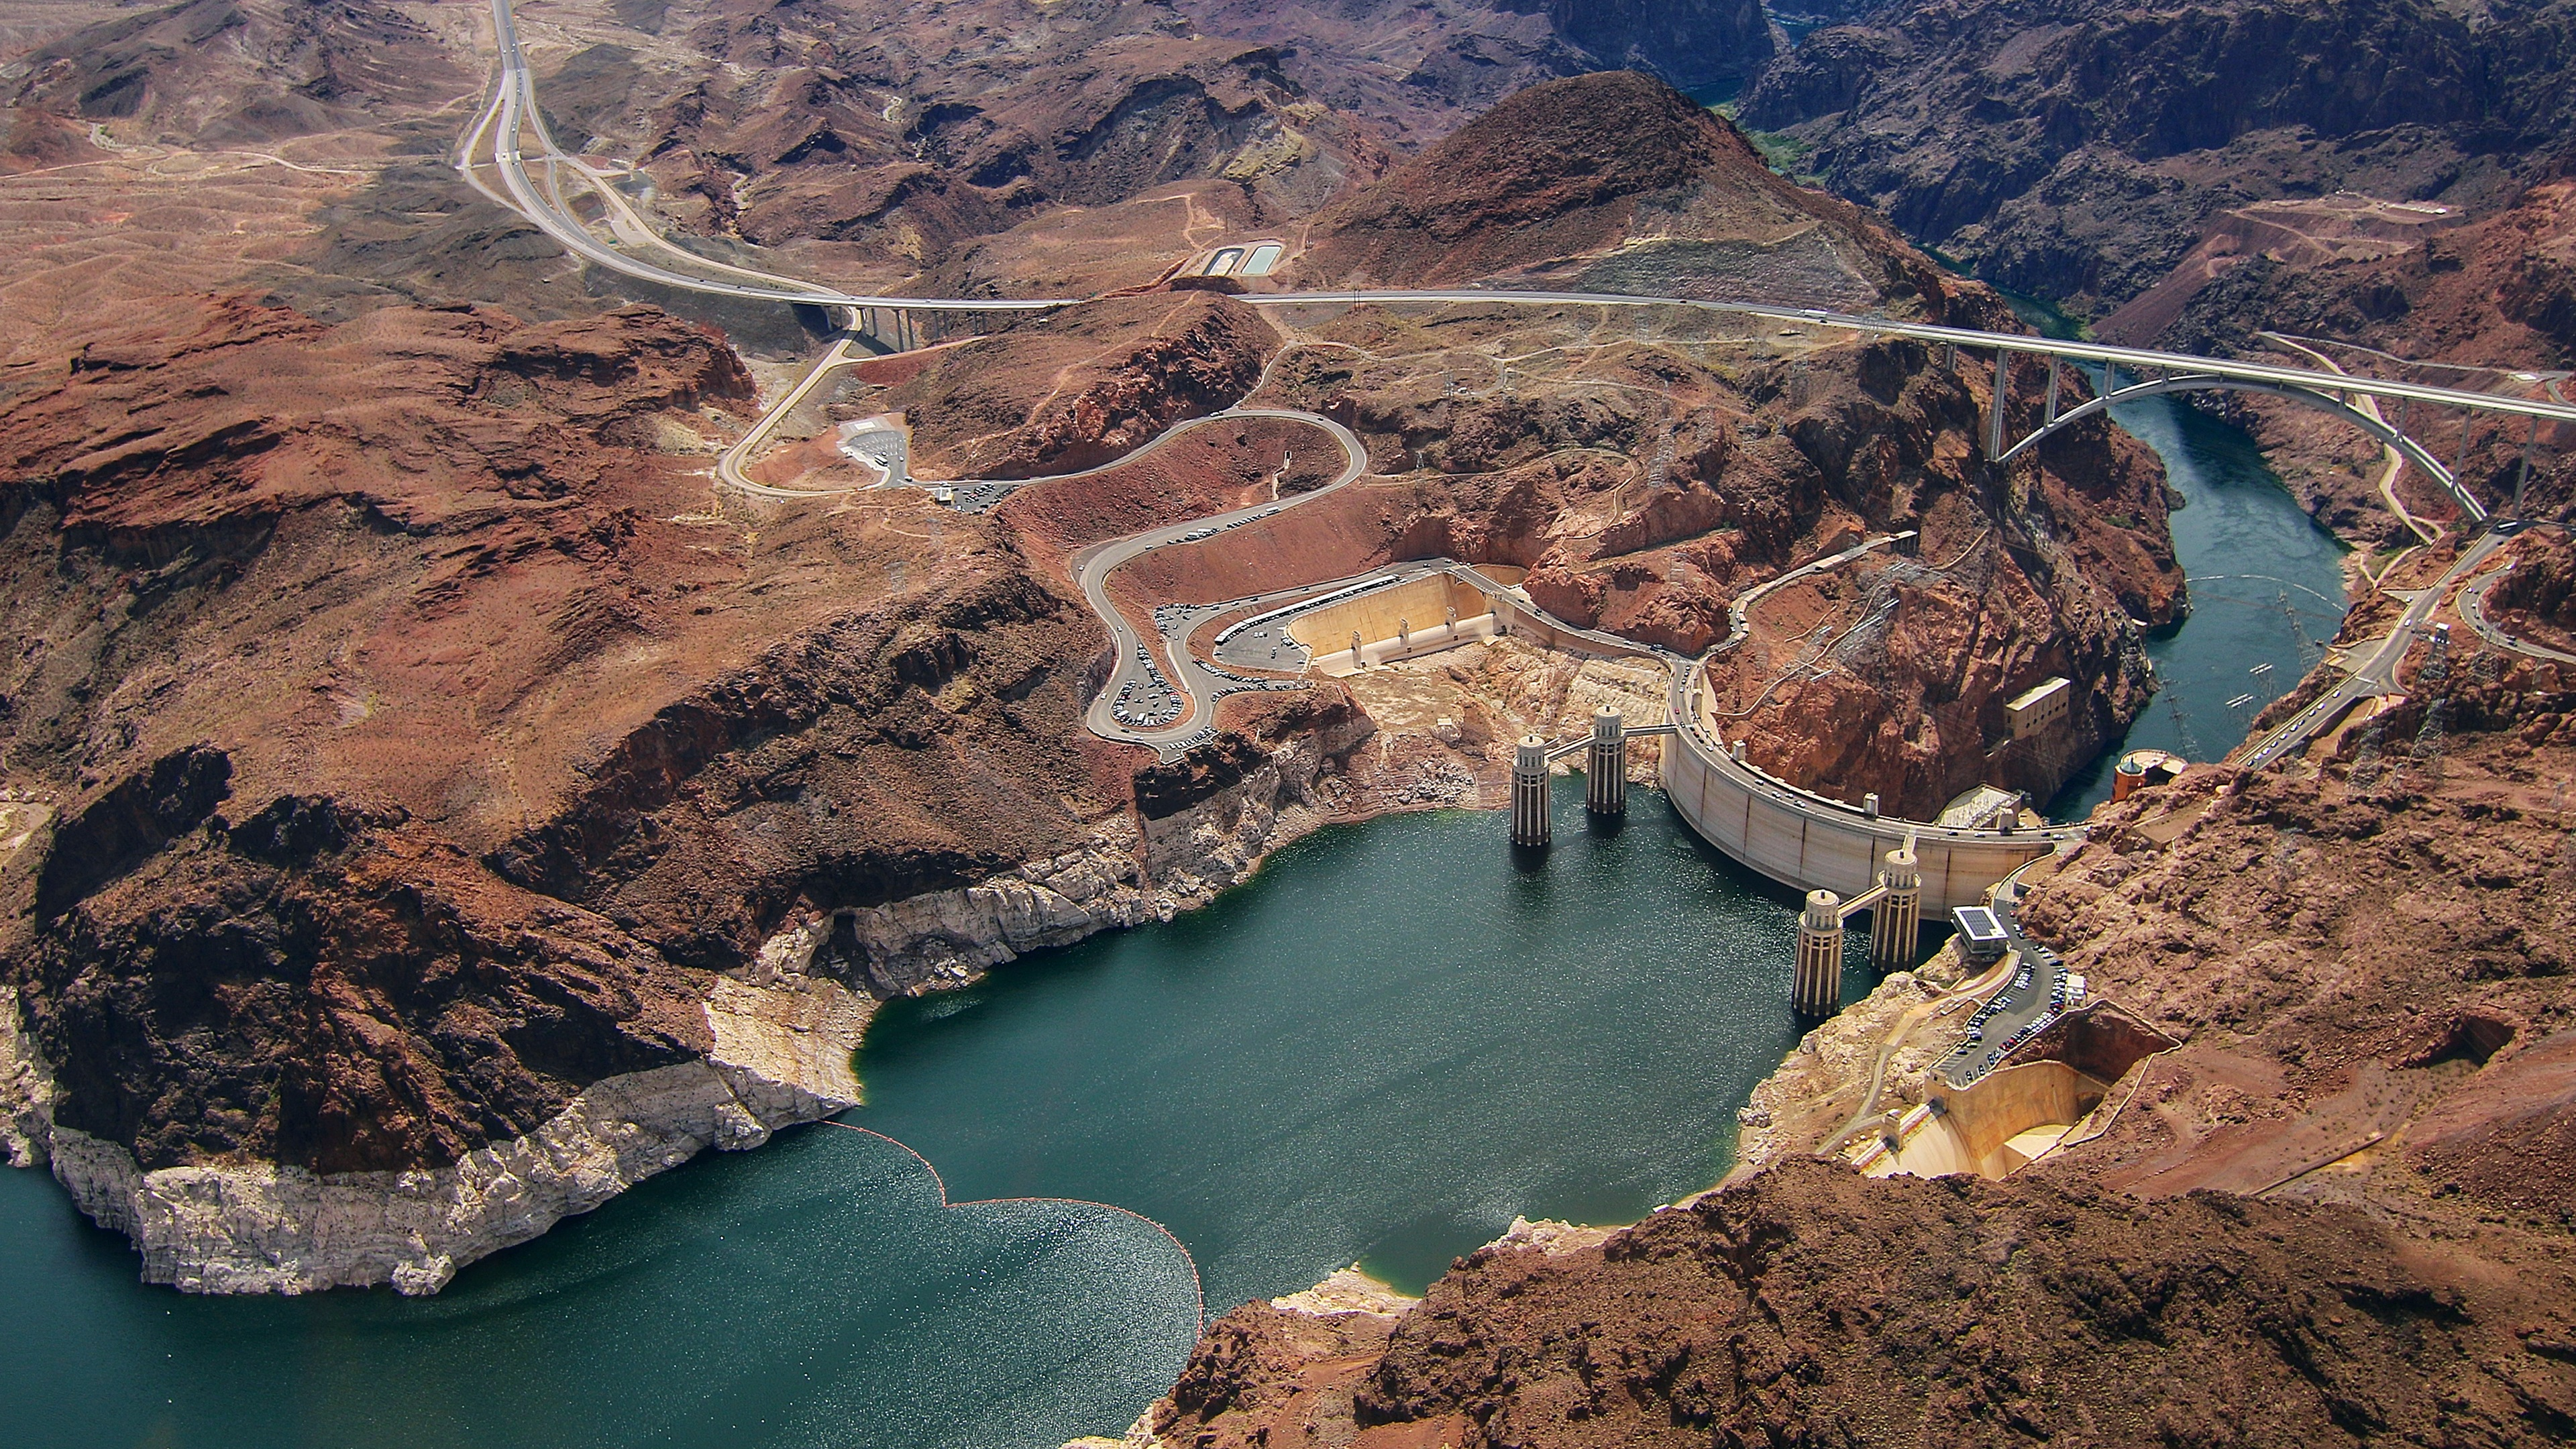 Hoover Dam 4K Ultra HD Desktop Wallpaper 3840x2160